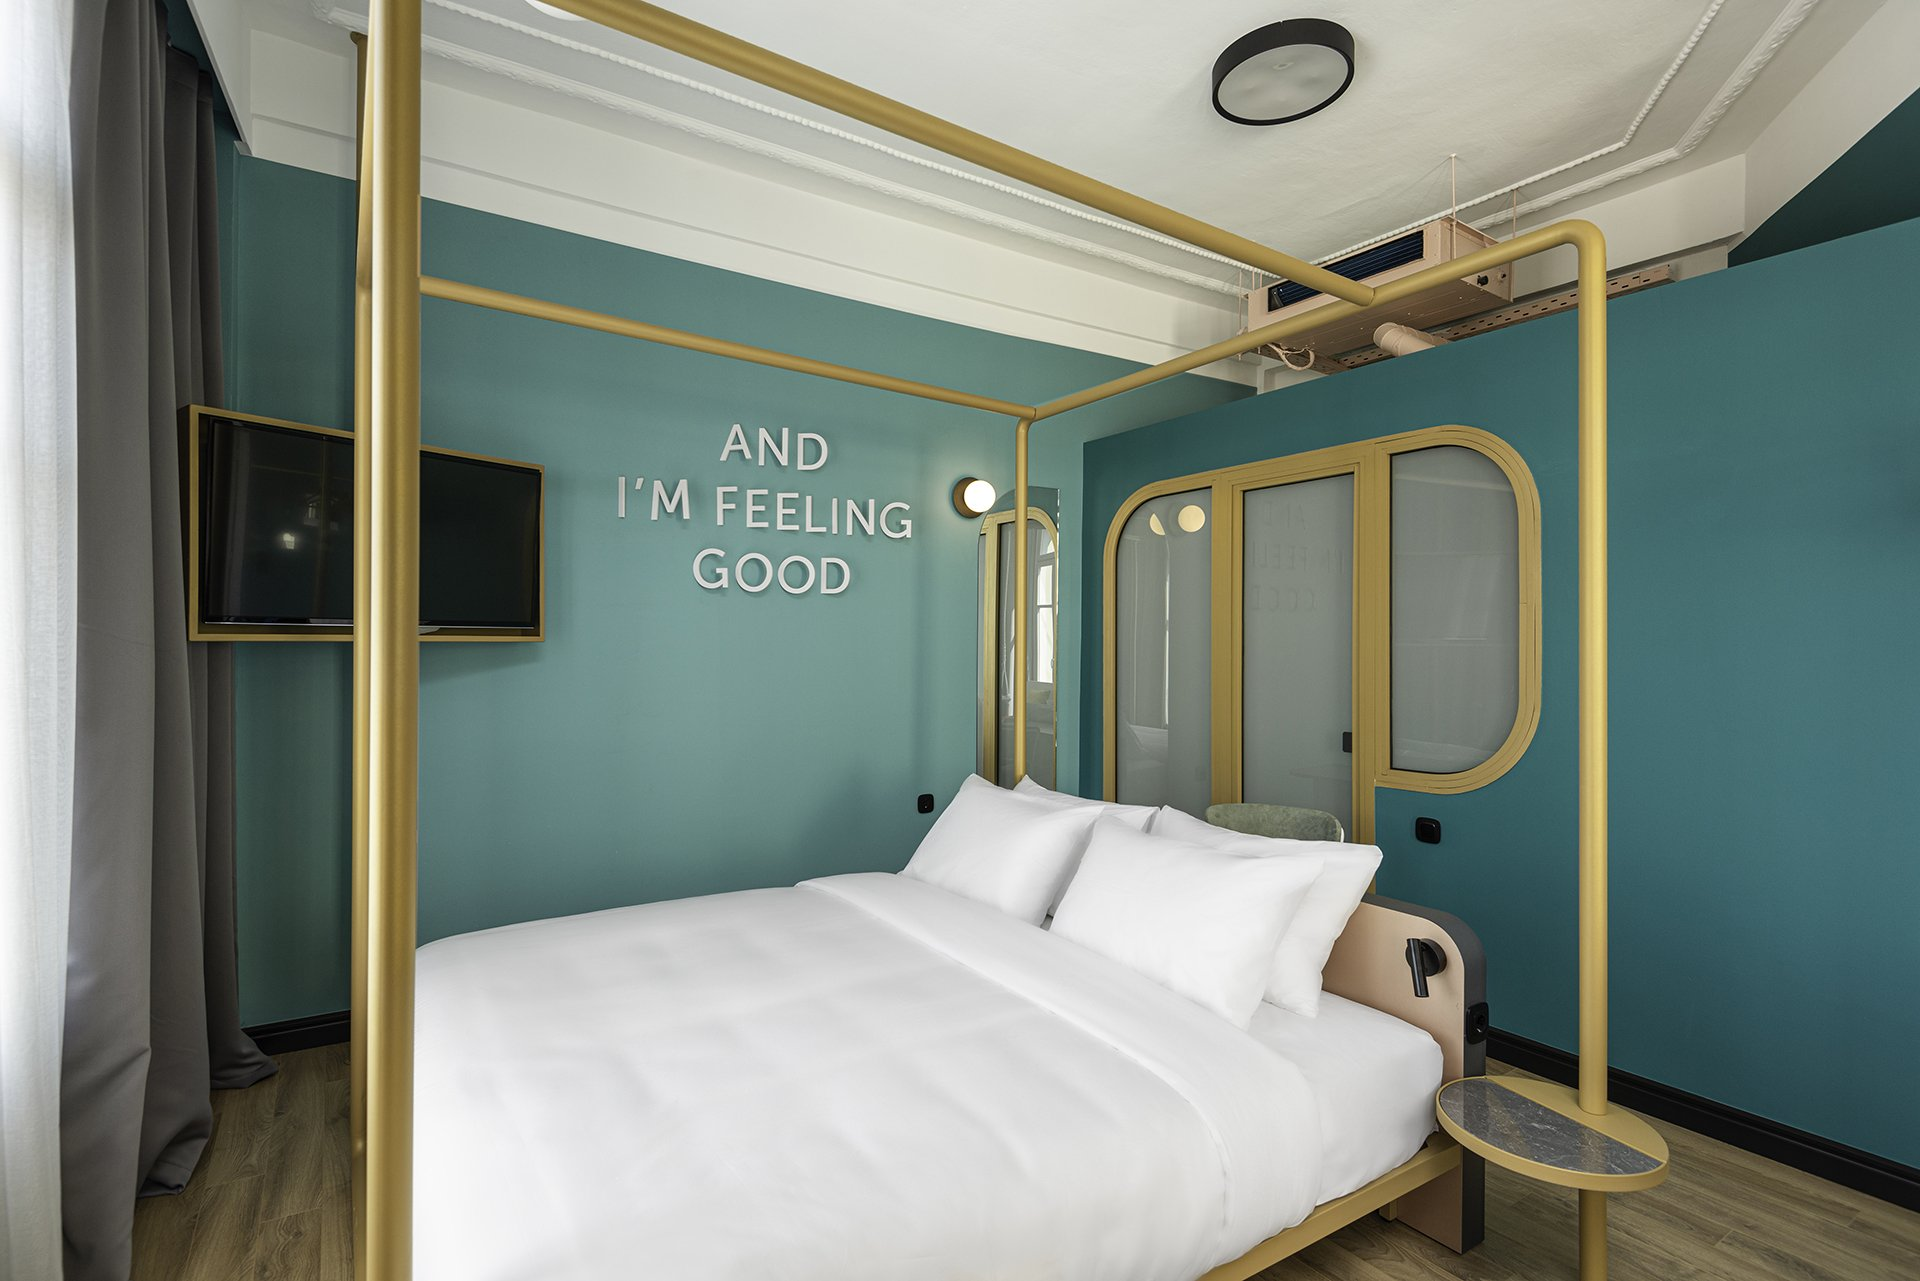 Copy of Colors Agiou Mina Thessaloniki Greece Deluxe Room with a Private Terrace and Jacuzzi 238 Colors 2